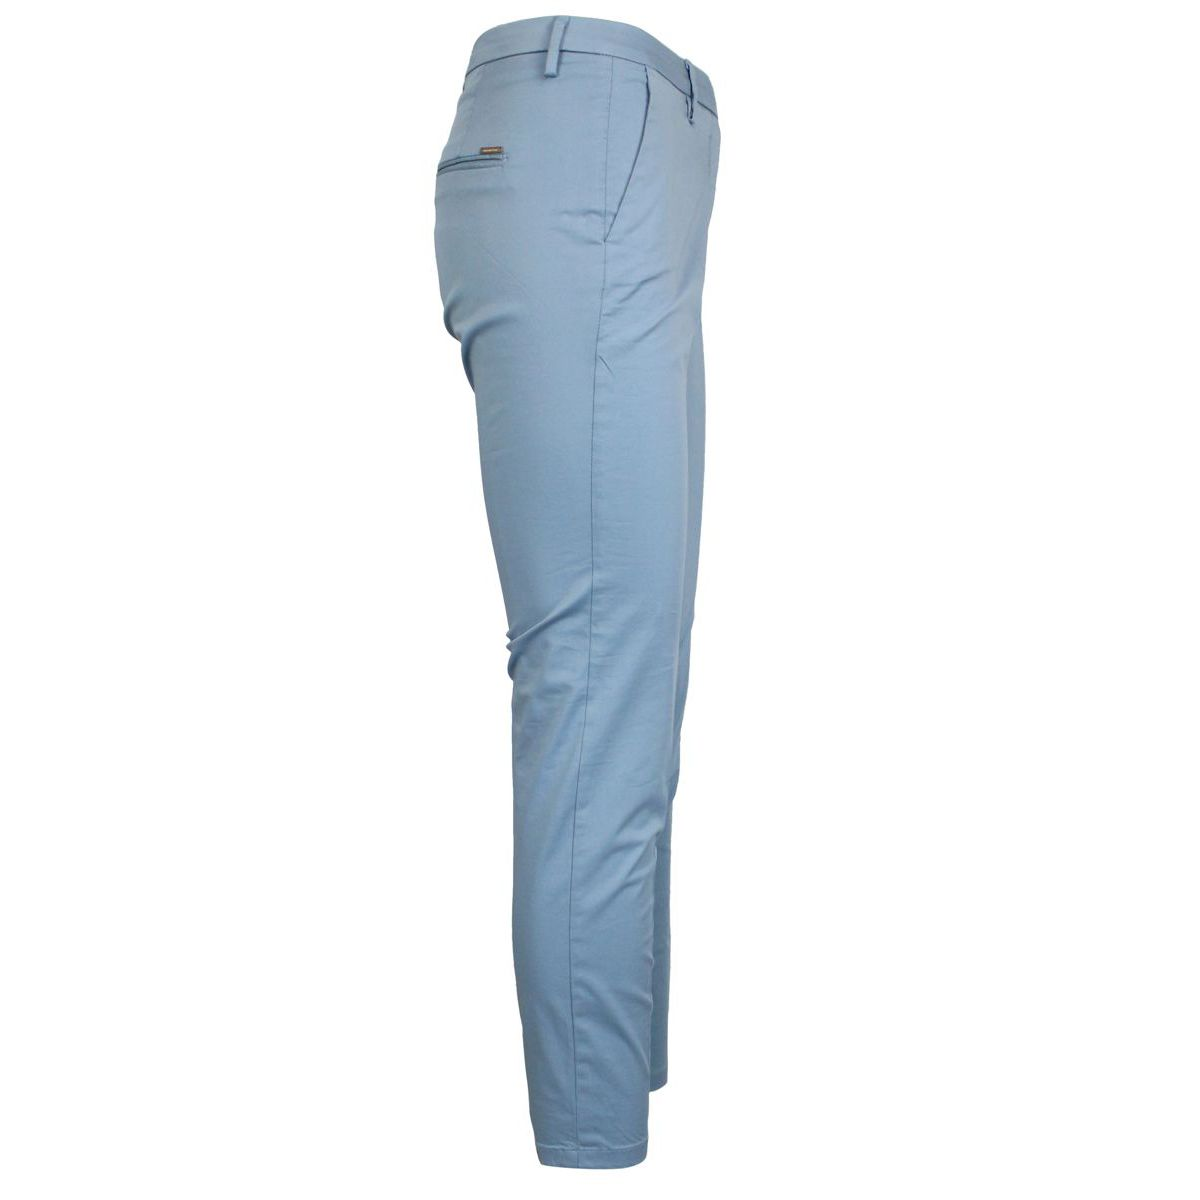 Cotton trousers with america pockets Sugar paper MICHAEL COAL